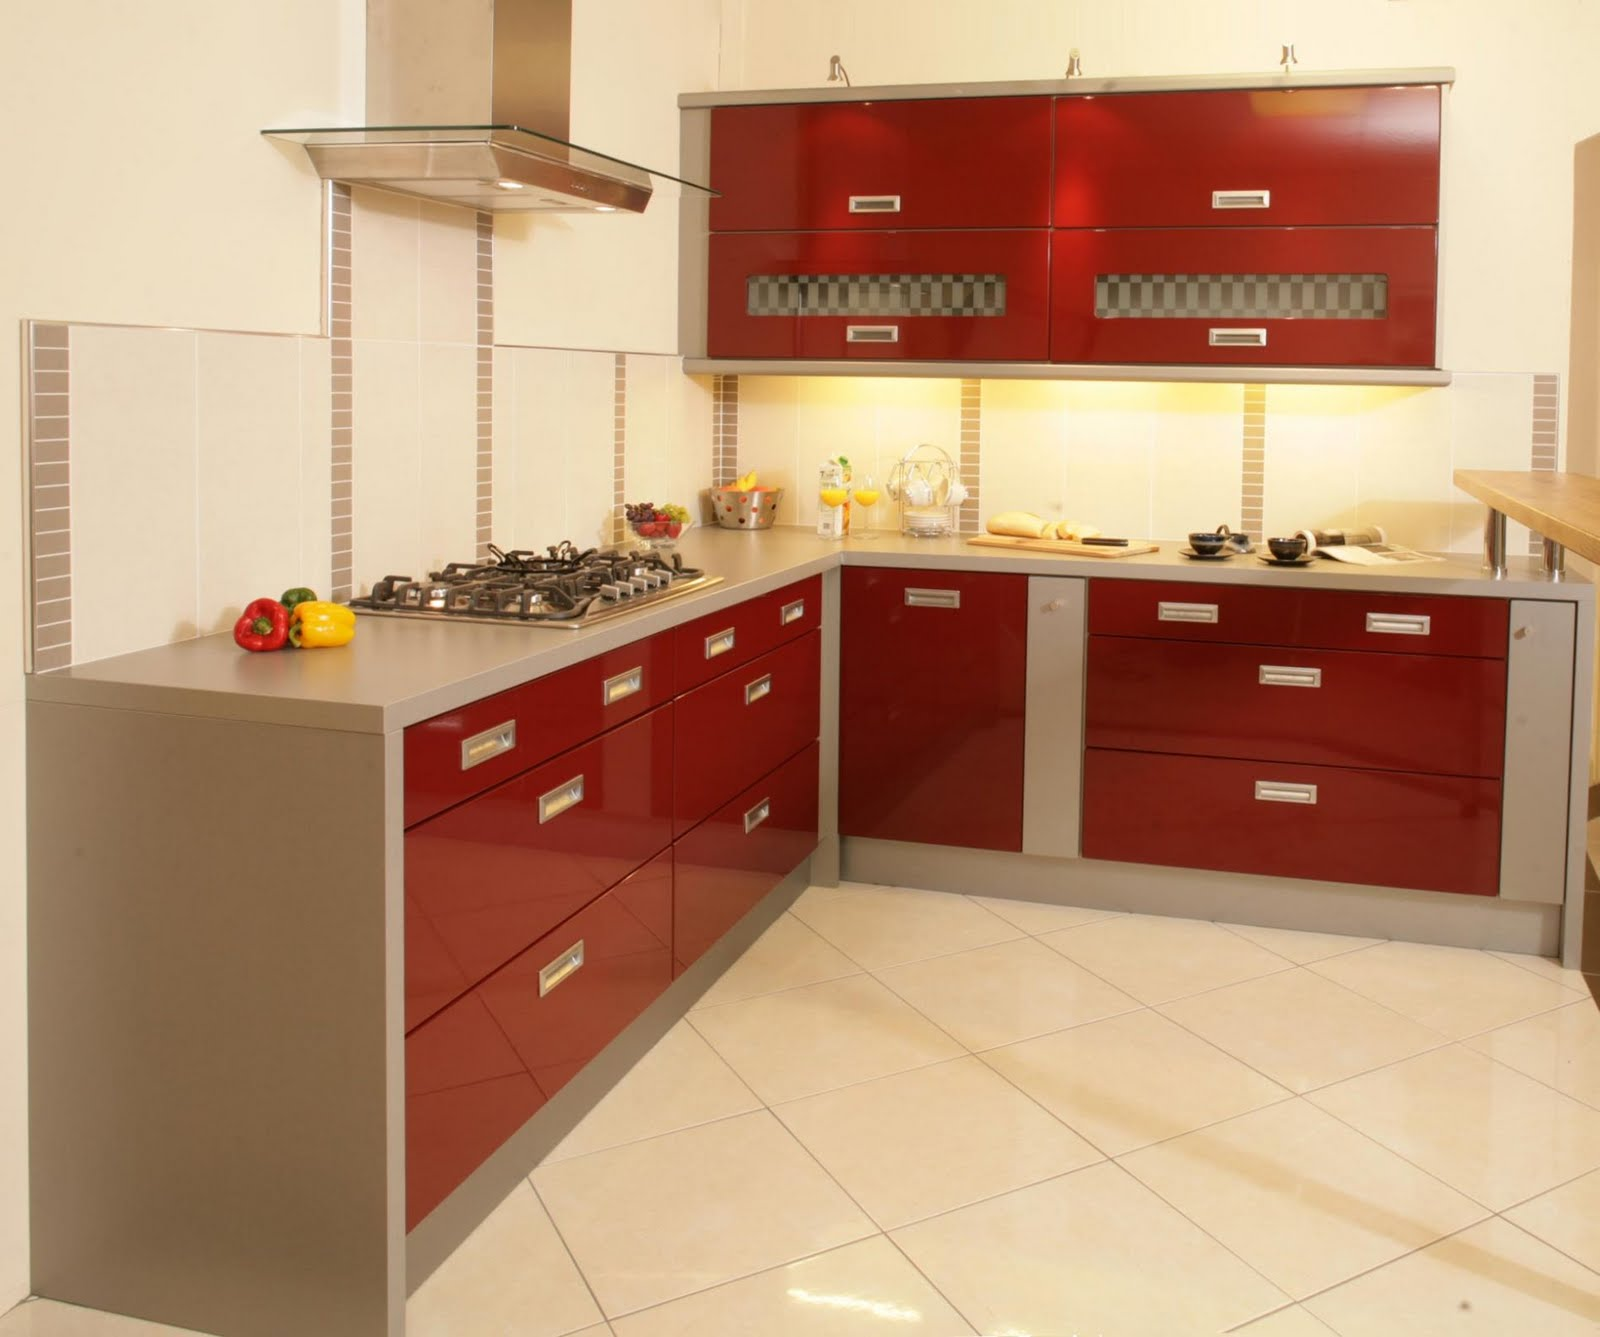 Pictures Of Red Kitchen Cabinets Kitchen Design Best Kitchen Design Ideas